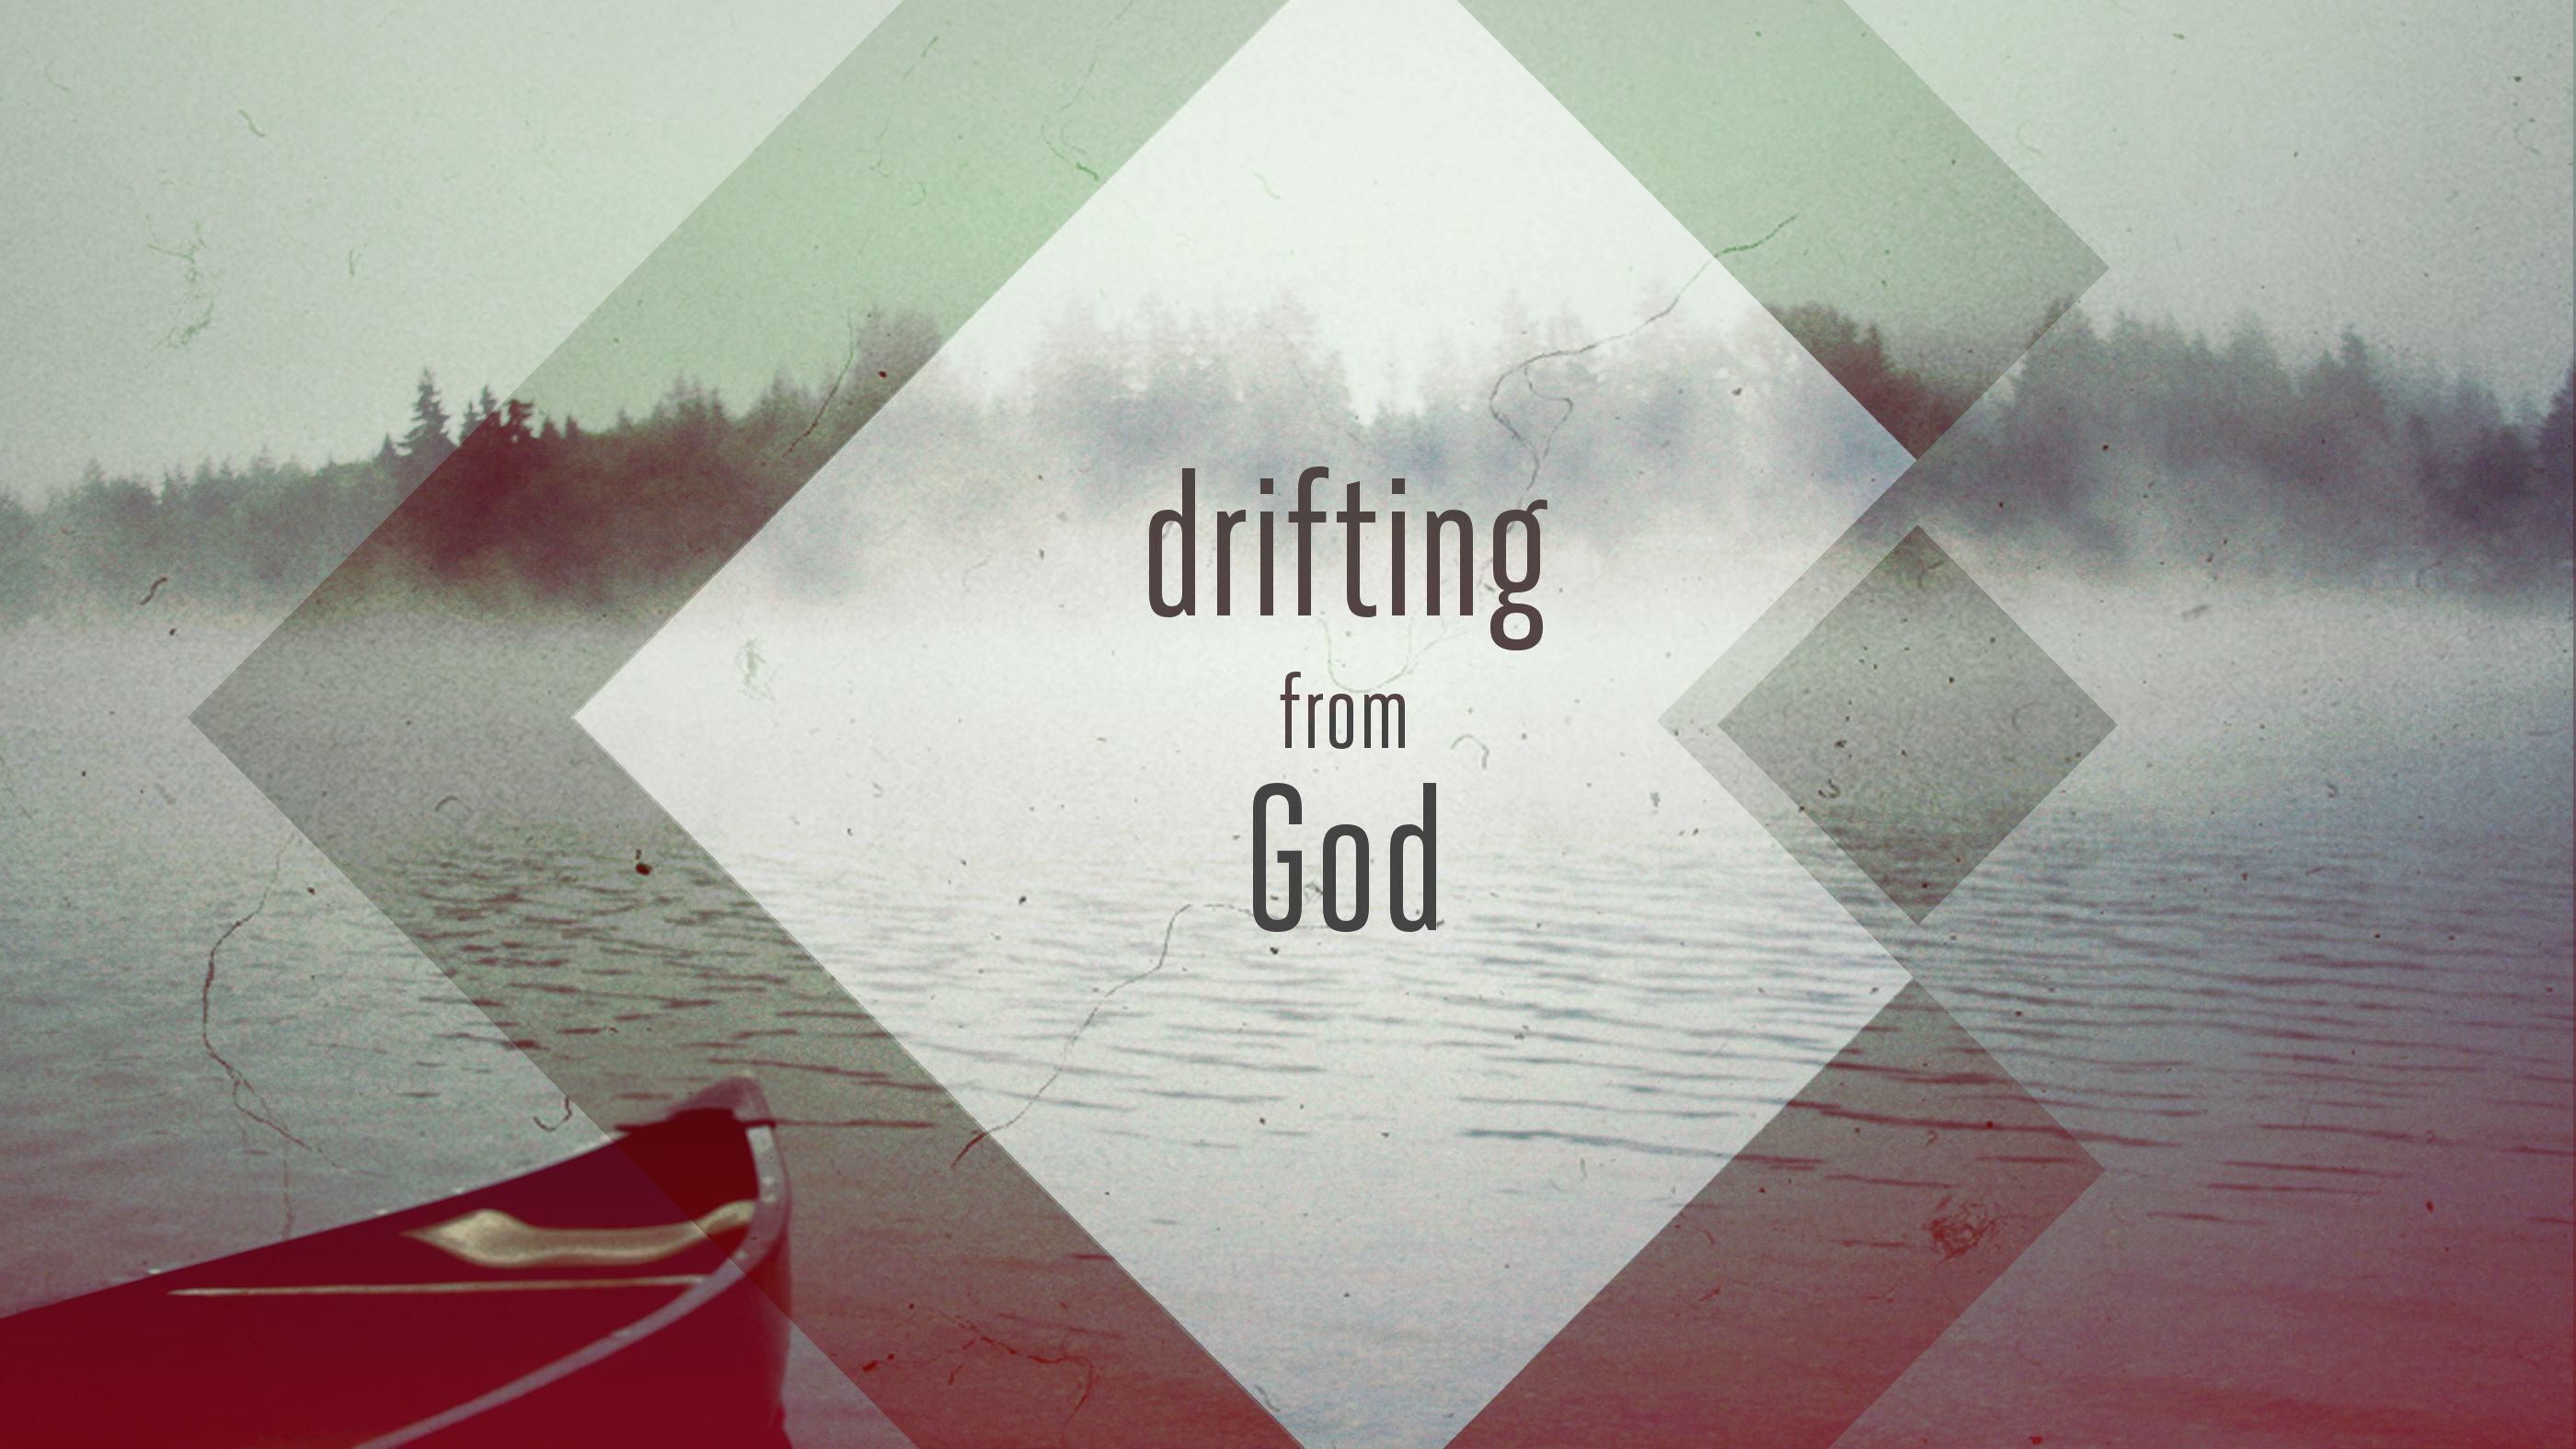 Drifting from God